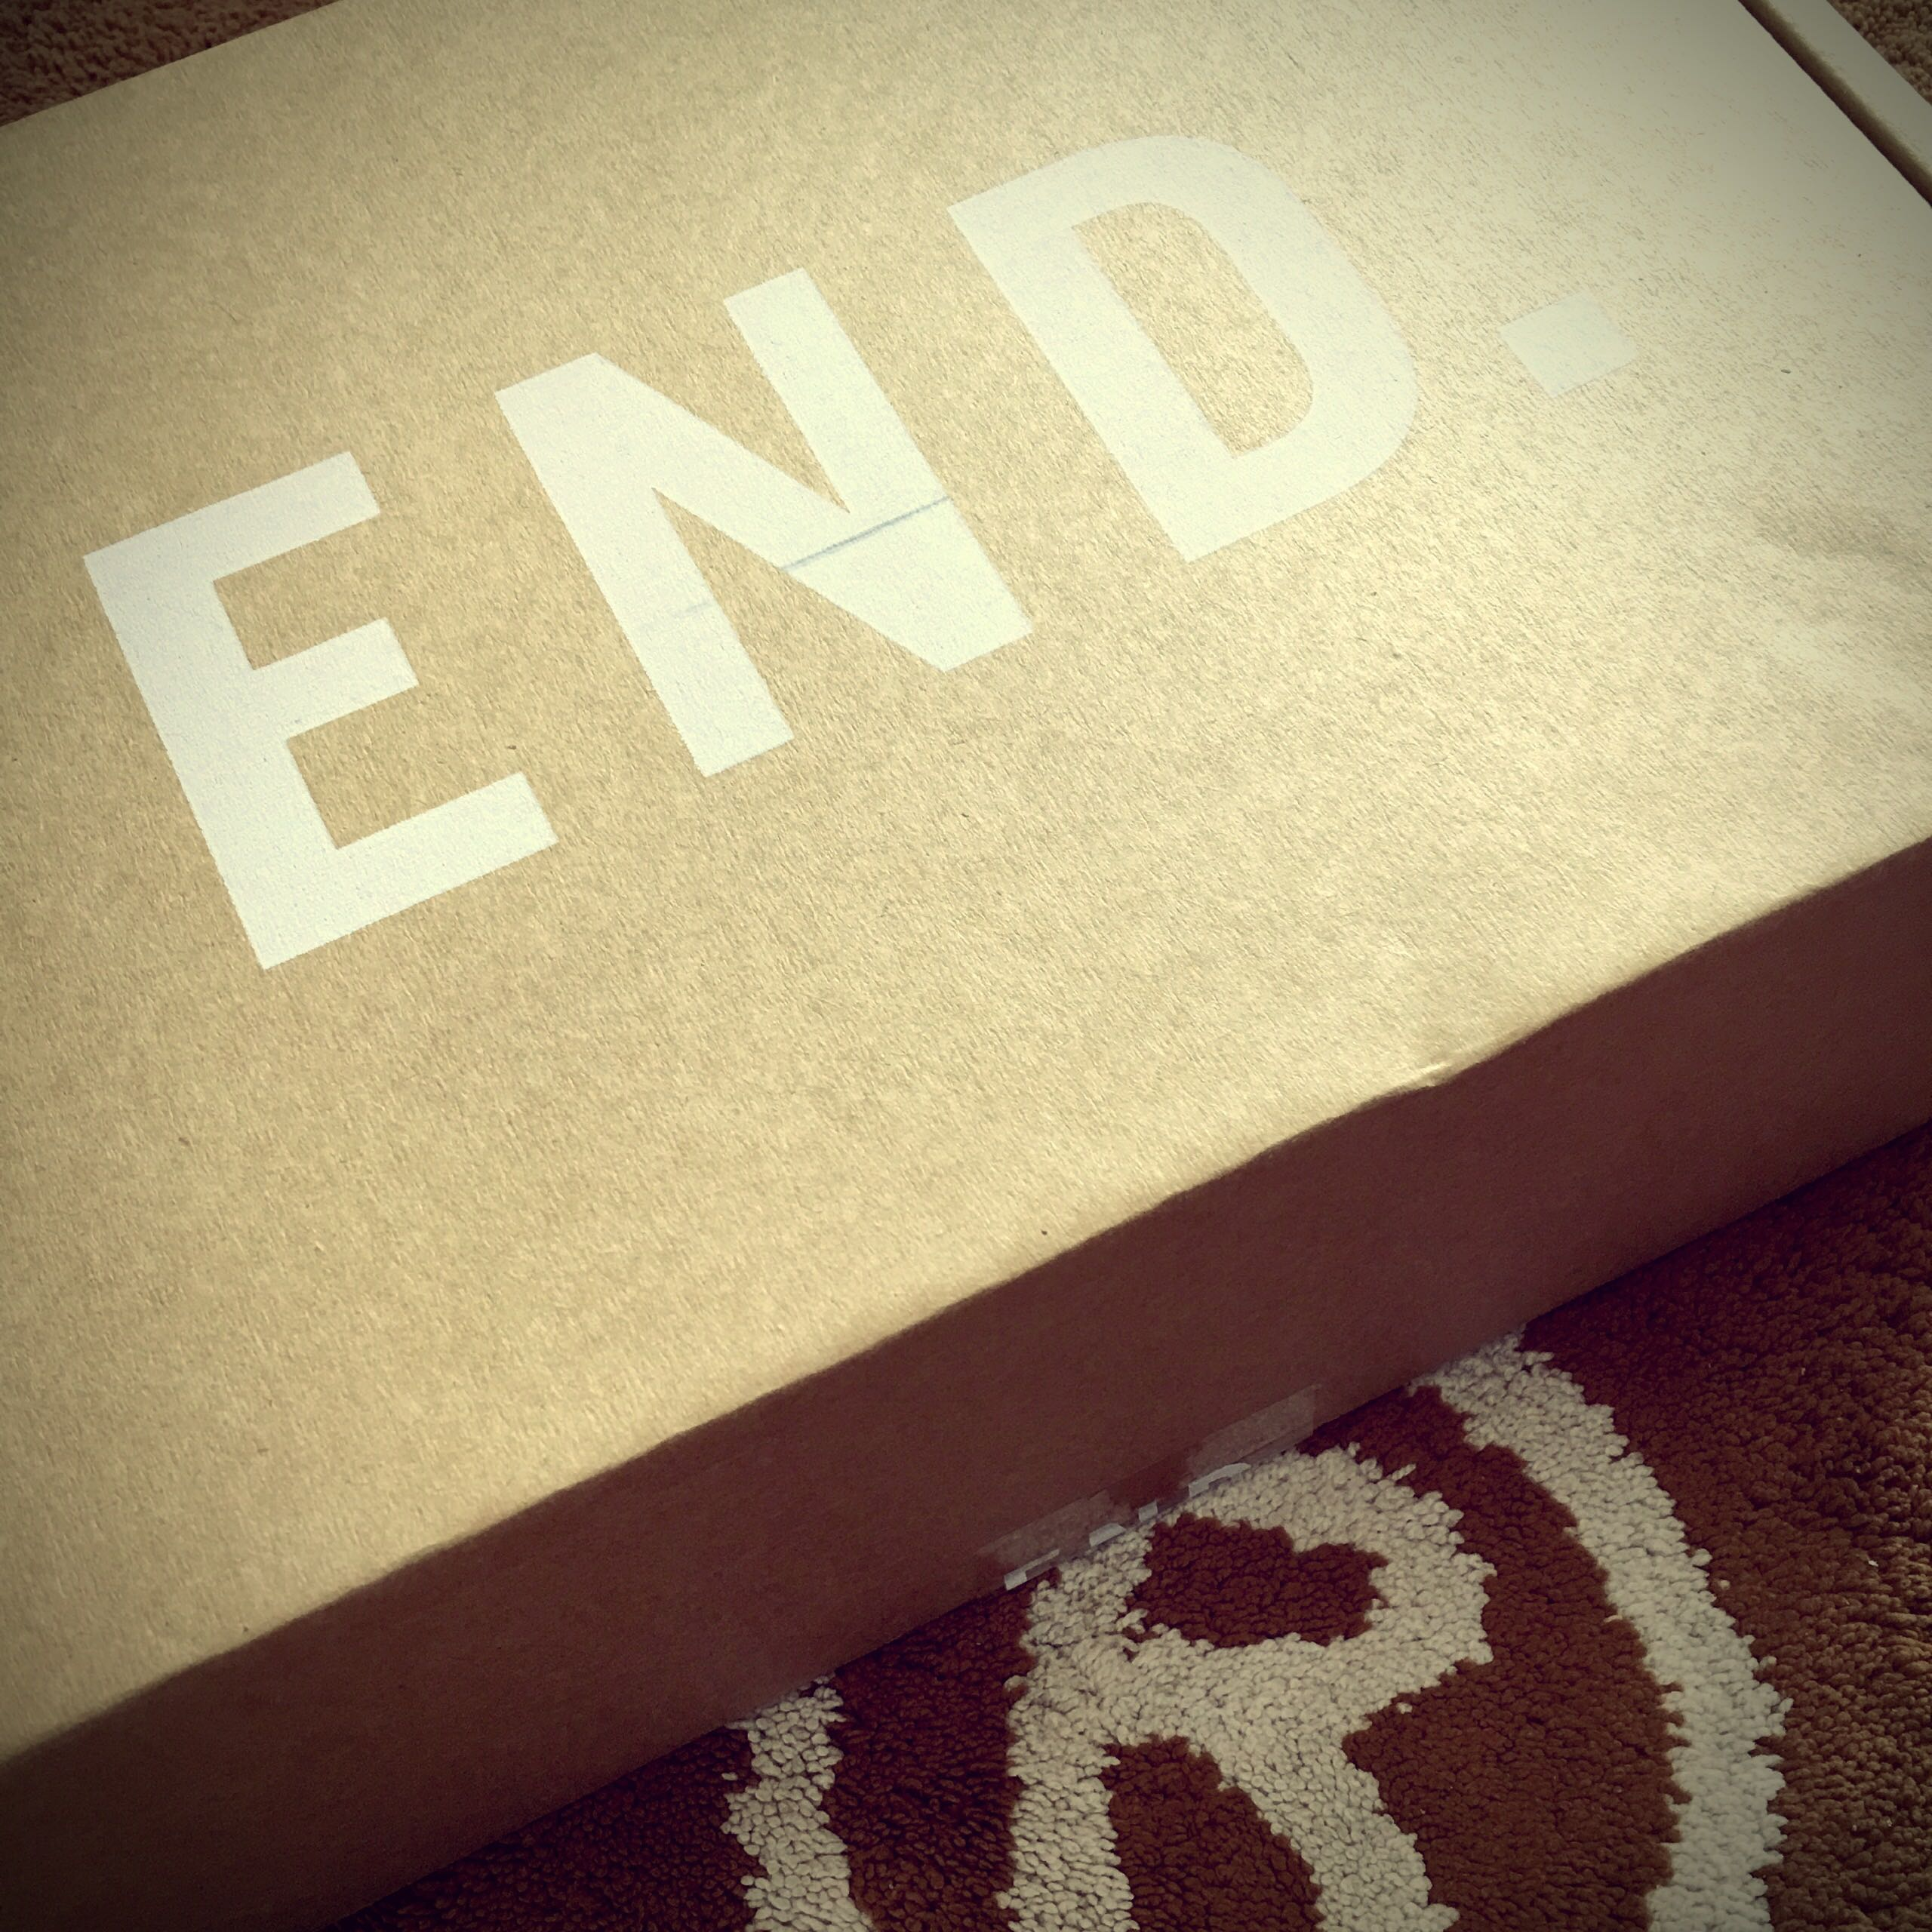 end_product